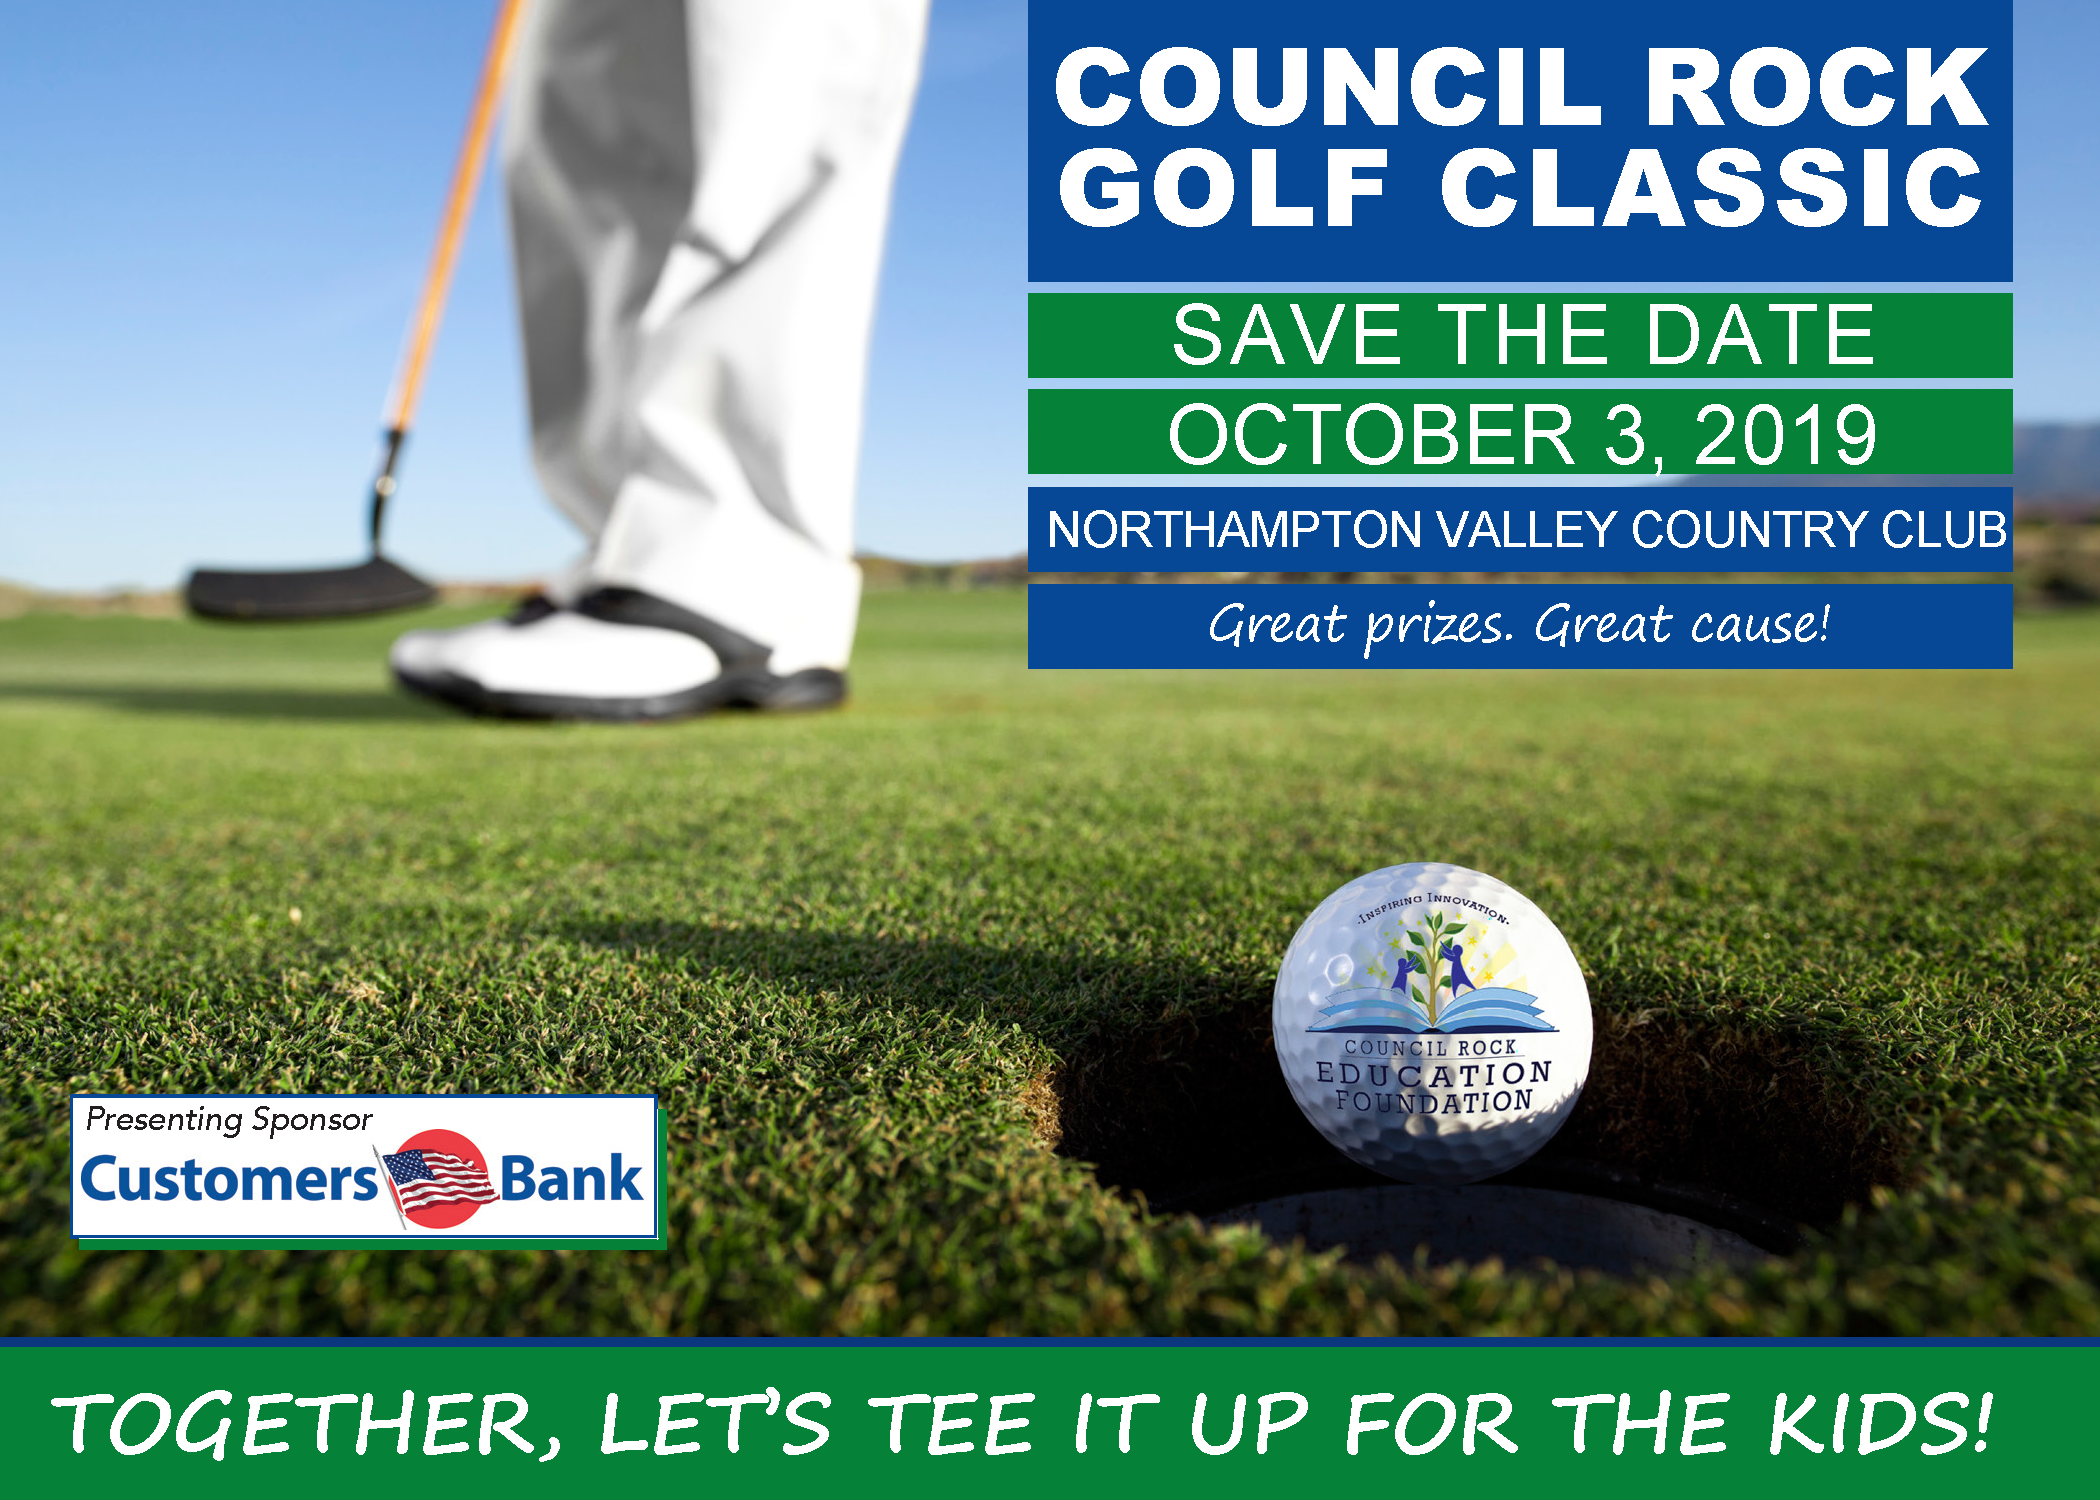 c70cb11e09 Join us on October 3, 2019, at the Northampton Valley Country Club for our  first annual Council Rock Golf Classic. Win prizes, Hole-in-One chance,  awards, ...